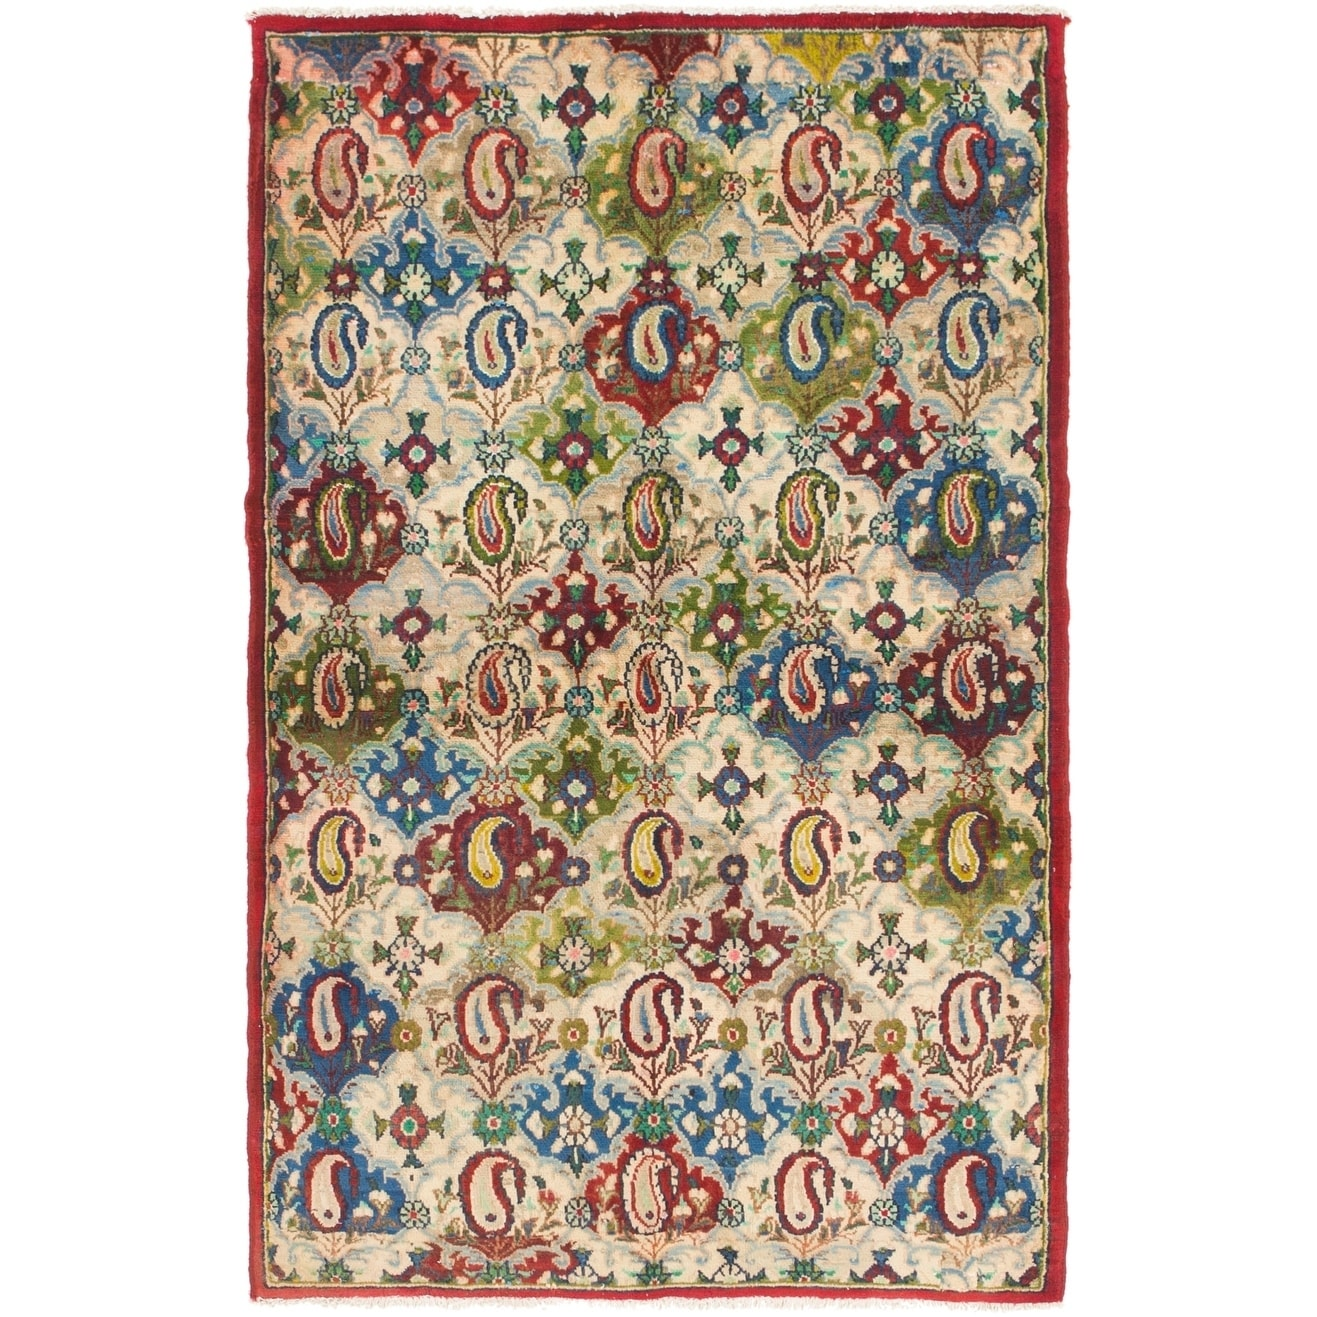 Hand Knotted Kashmar Semi Antique Wool Area Rug - 3 10 x 6 (Navy blue - 3 10 x 6)